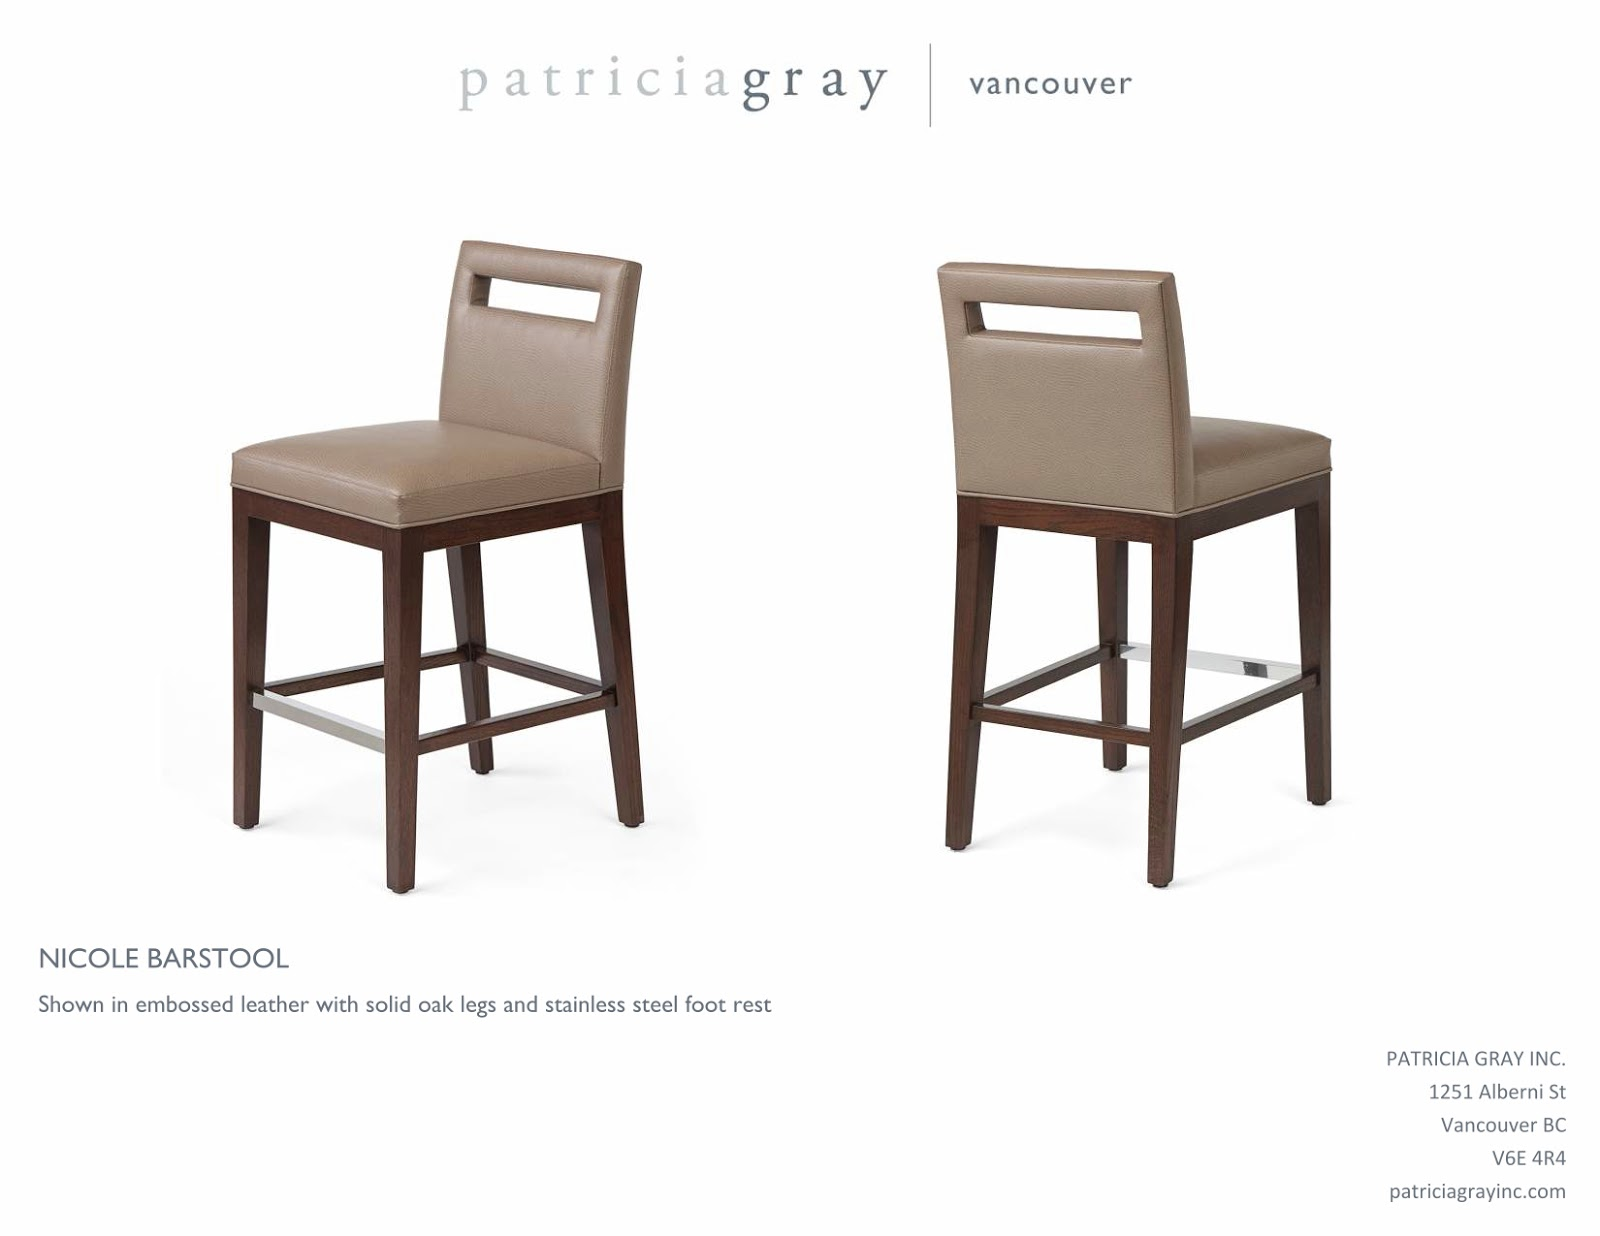 Furniture Design Vancouver patricia gray | interior design blog™